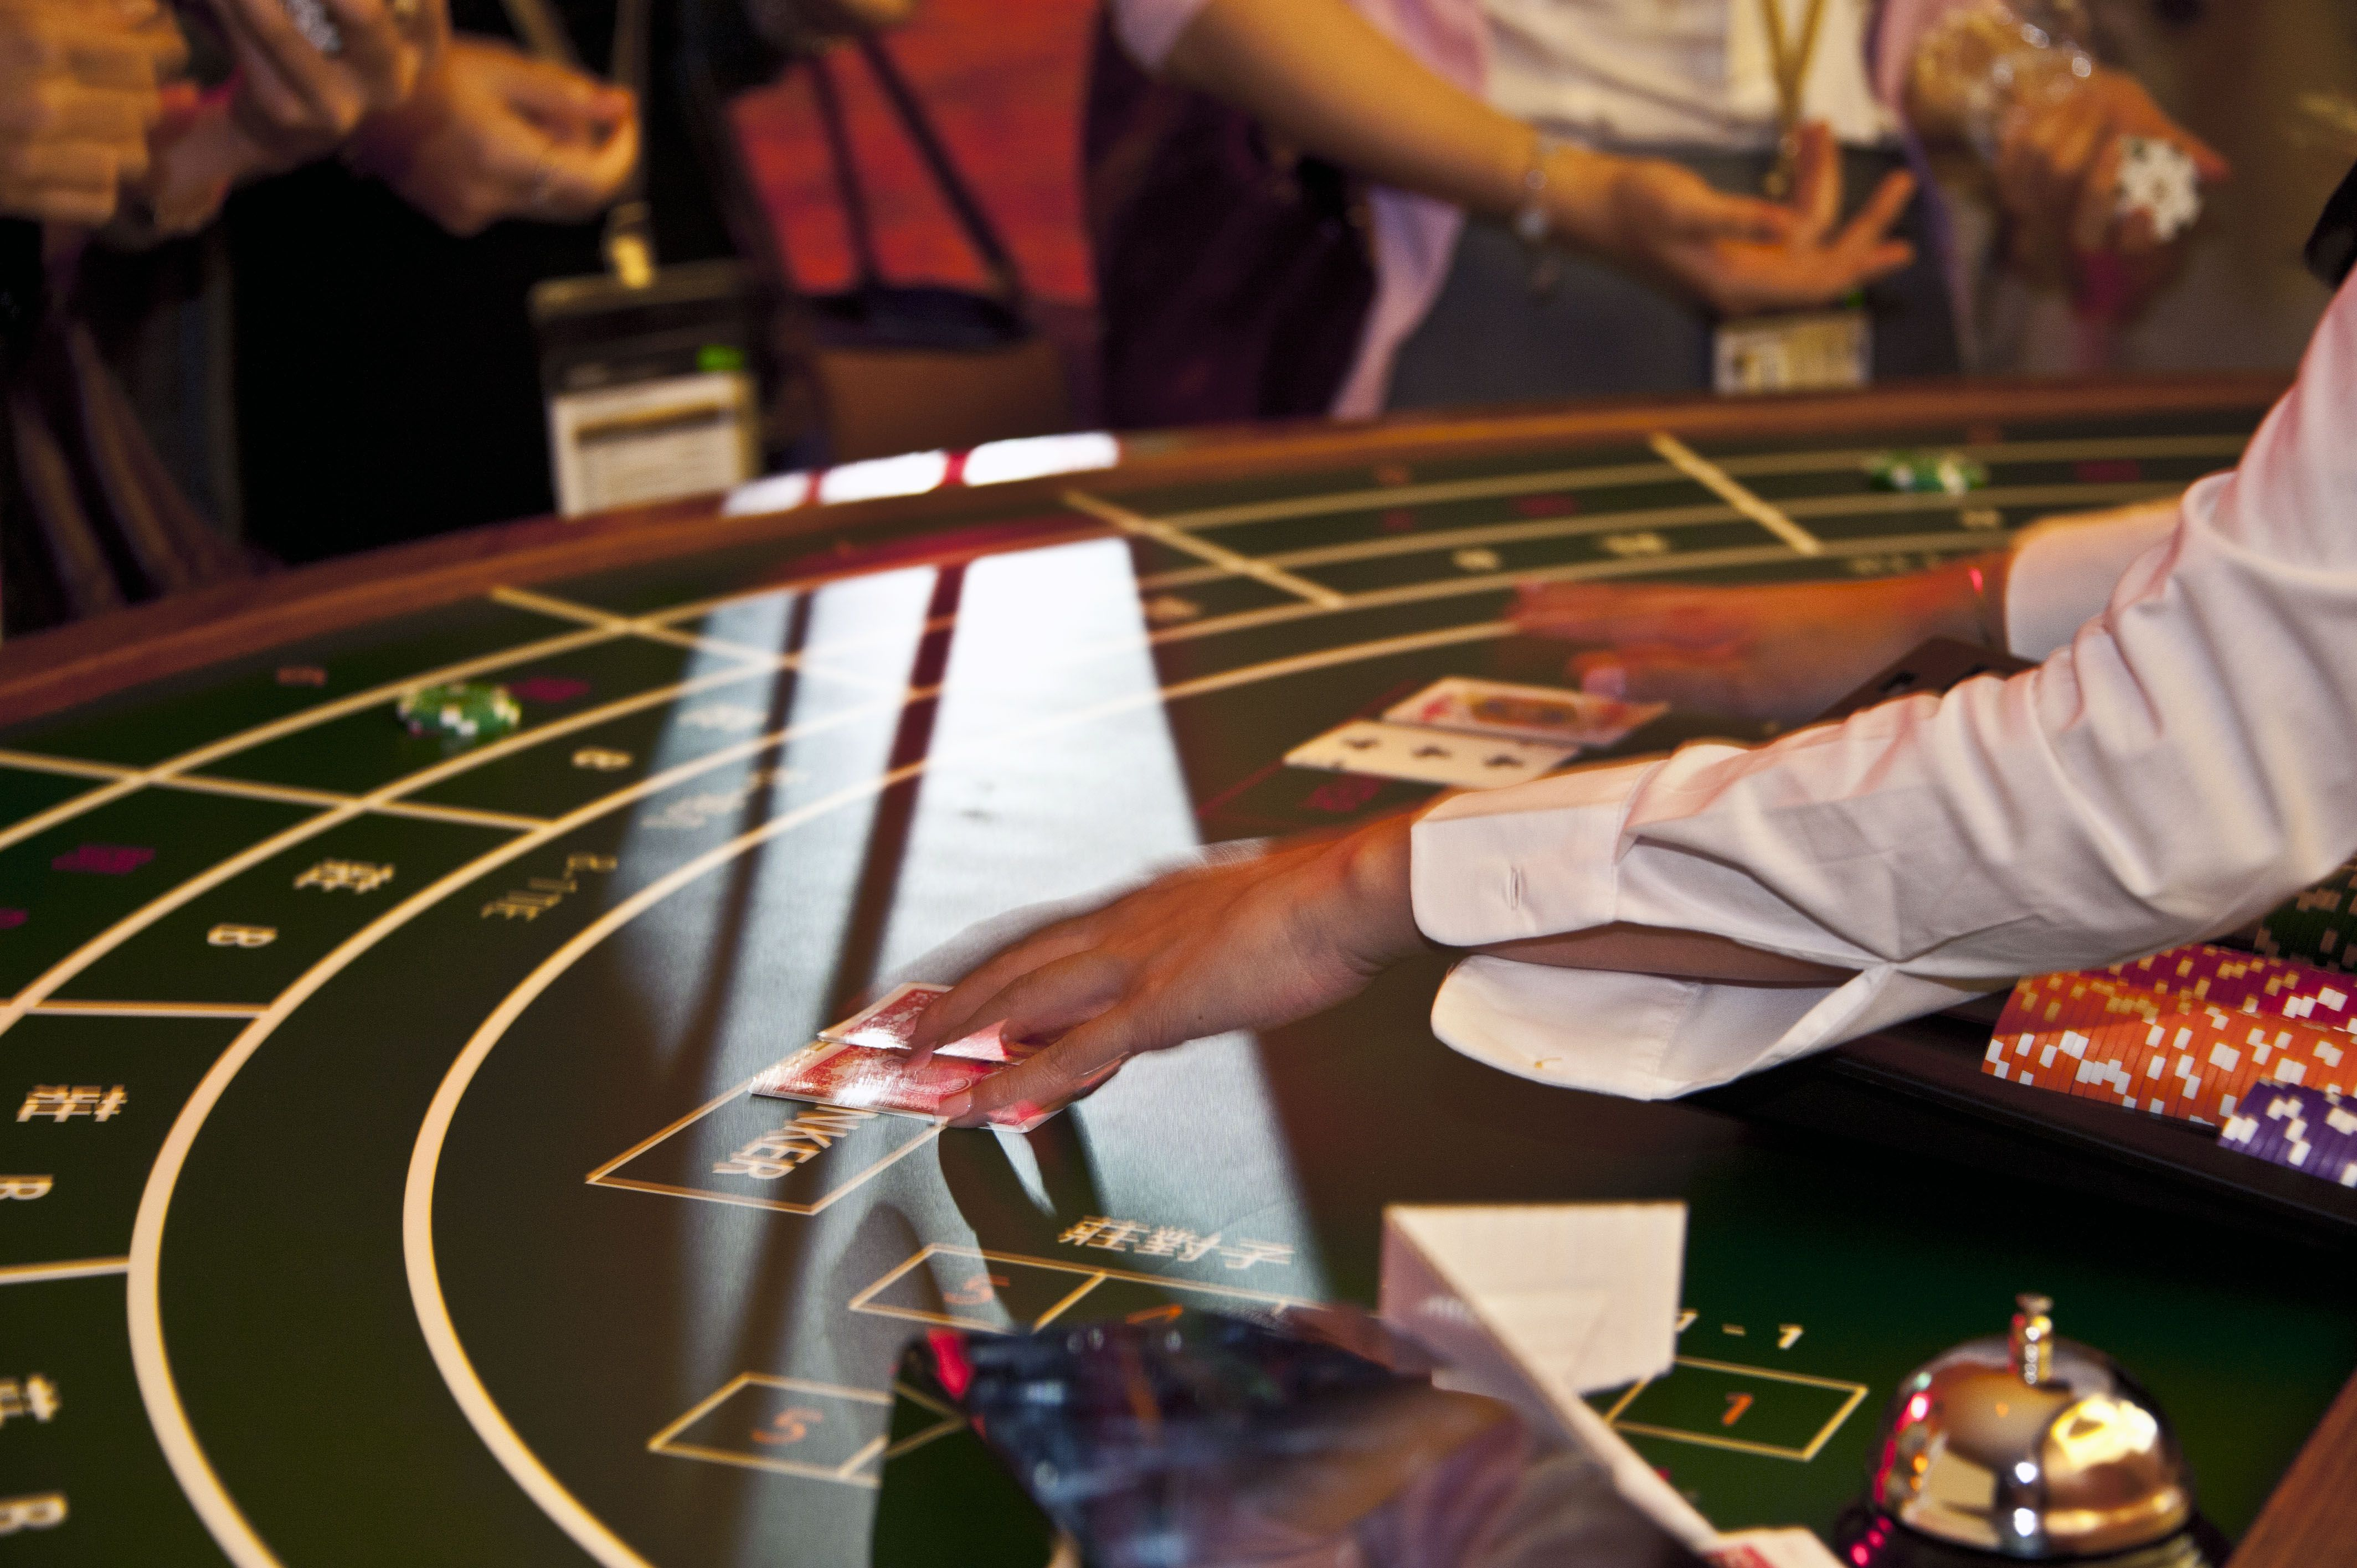 In this theme party, play the popular table games, collect chips and win surprise prizes at the end!